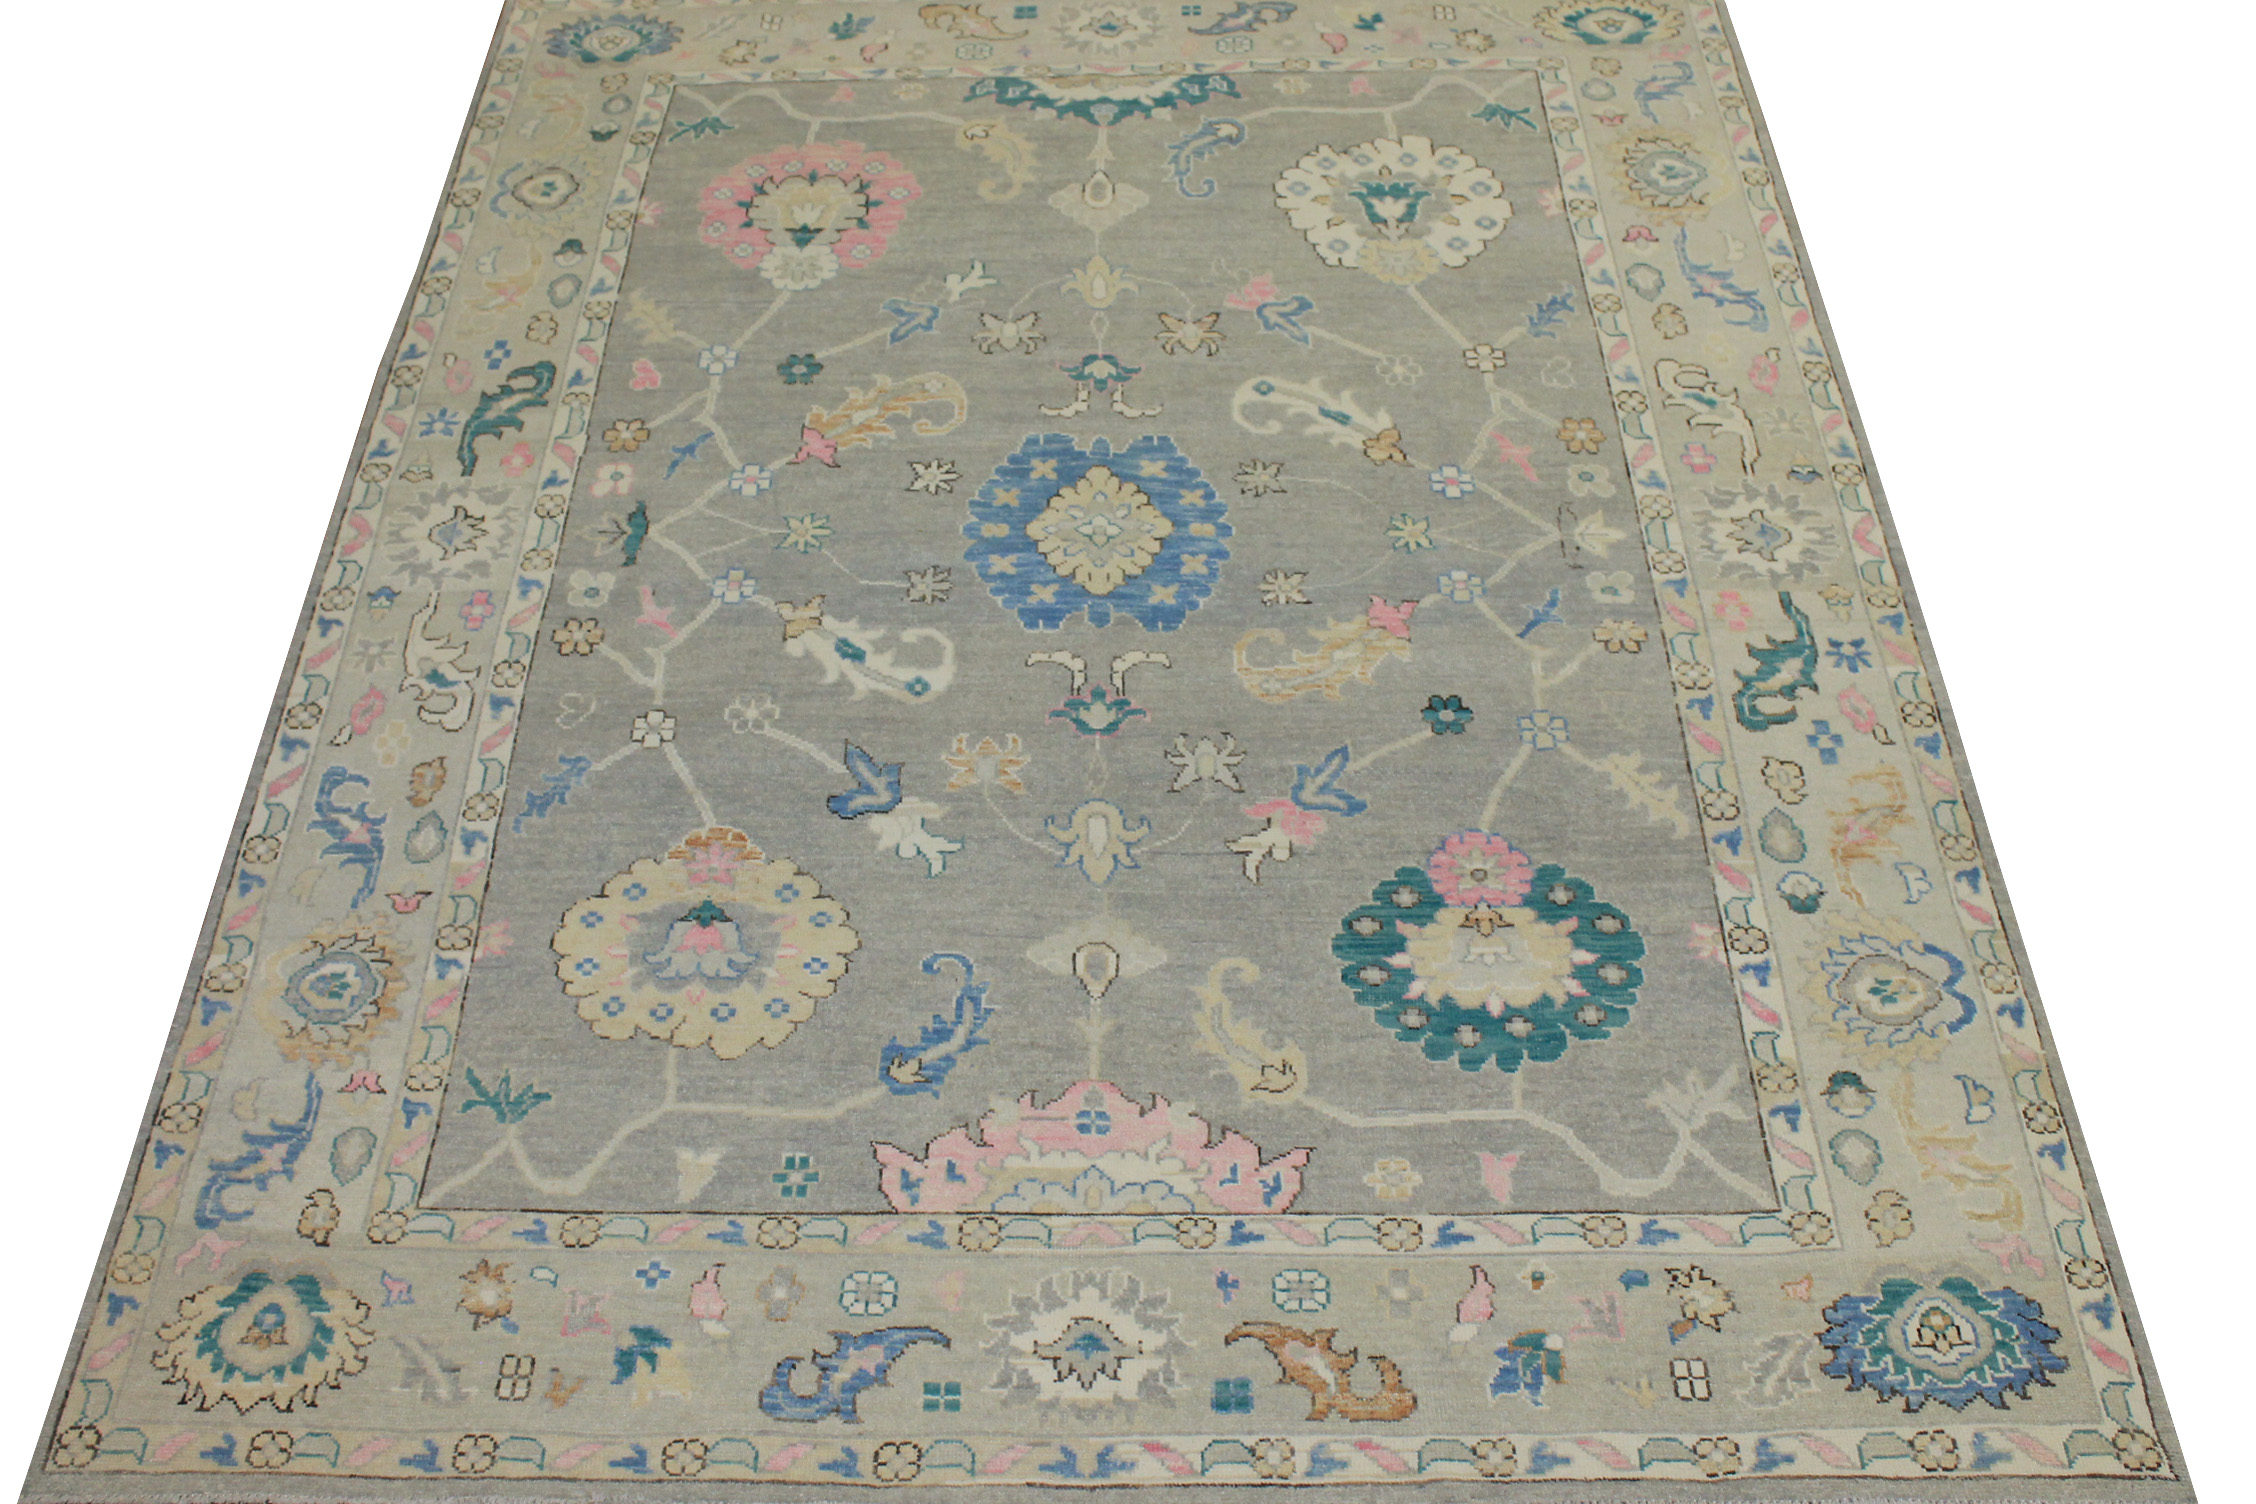 9x12 Oushak Hand Knotted Wool Area Rug - MR024429